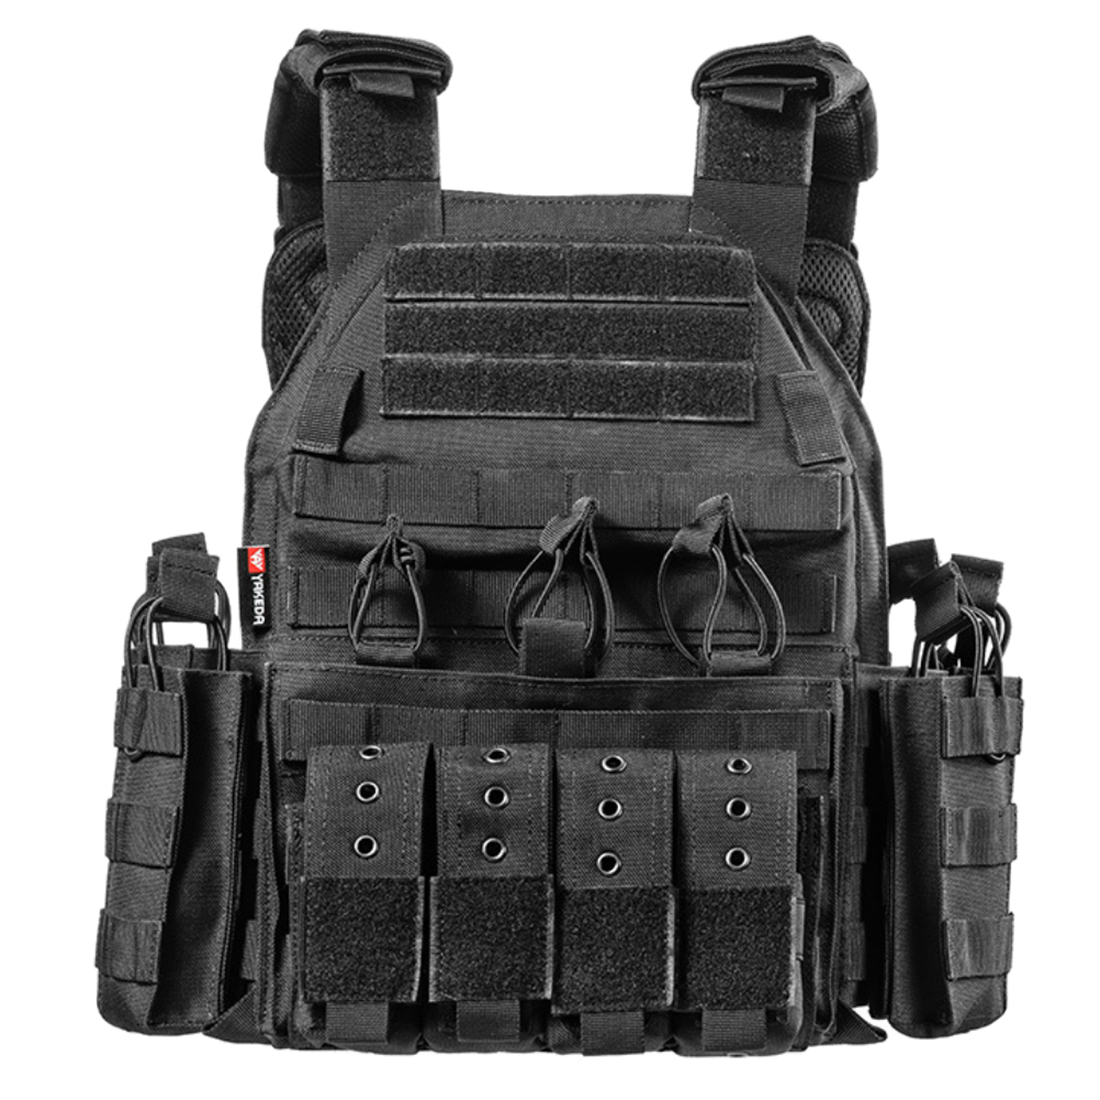 YAKEDA Plate Carrier Tactical Accessories for Men Outdoor Airsoft Body Protective Accessory outdoors tactics accessories - TanYAKEDA Plate Carrier Tactical Accessories for Men Outdoor Airsoft Body Protective Accessory outdoors tactics accessories - Tan